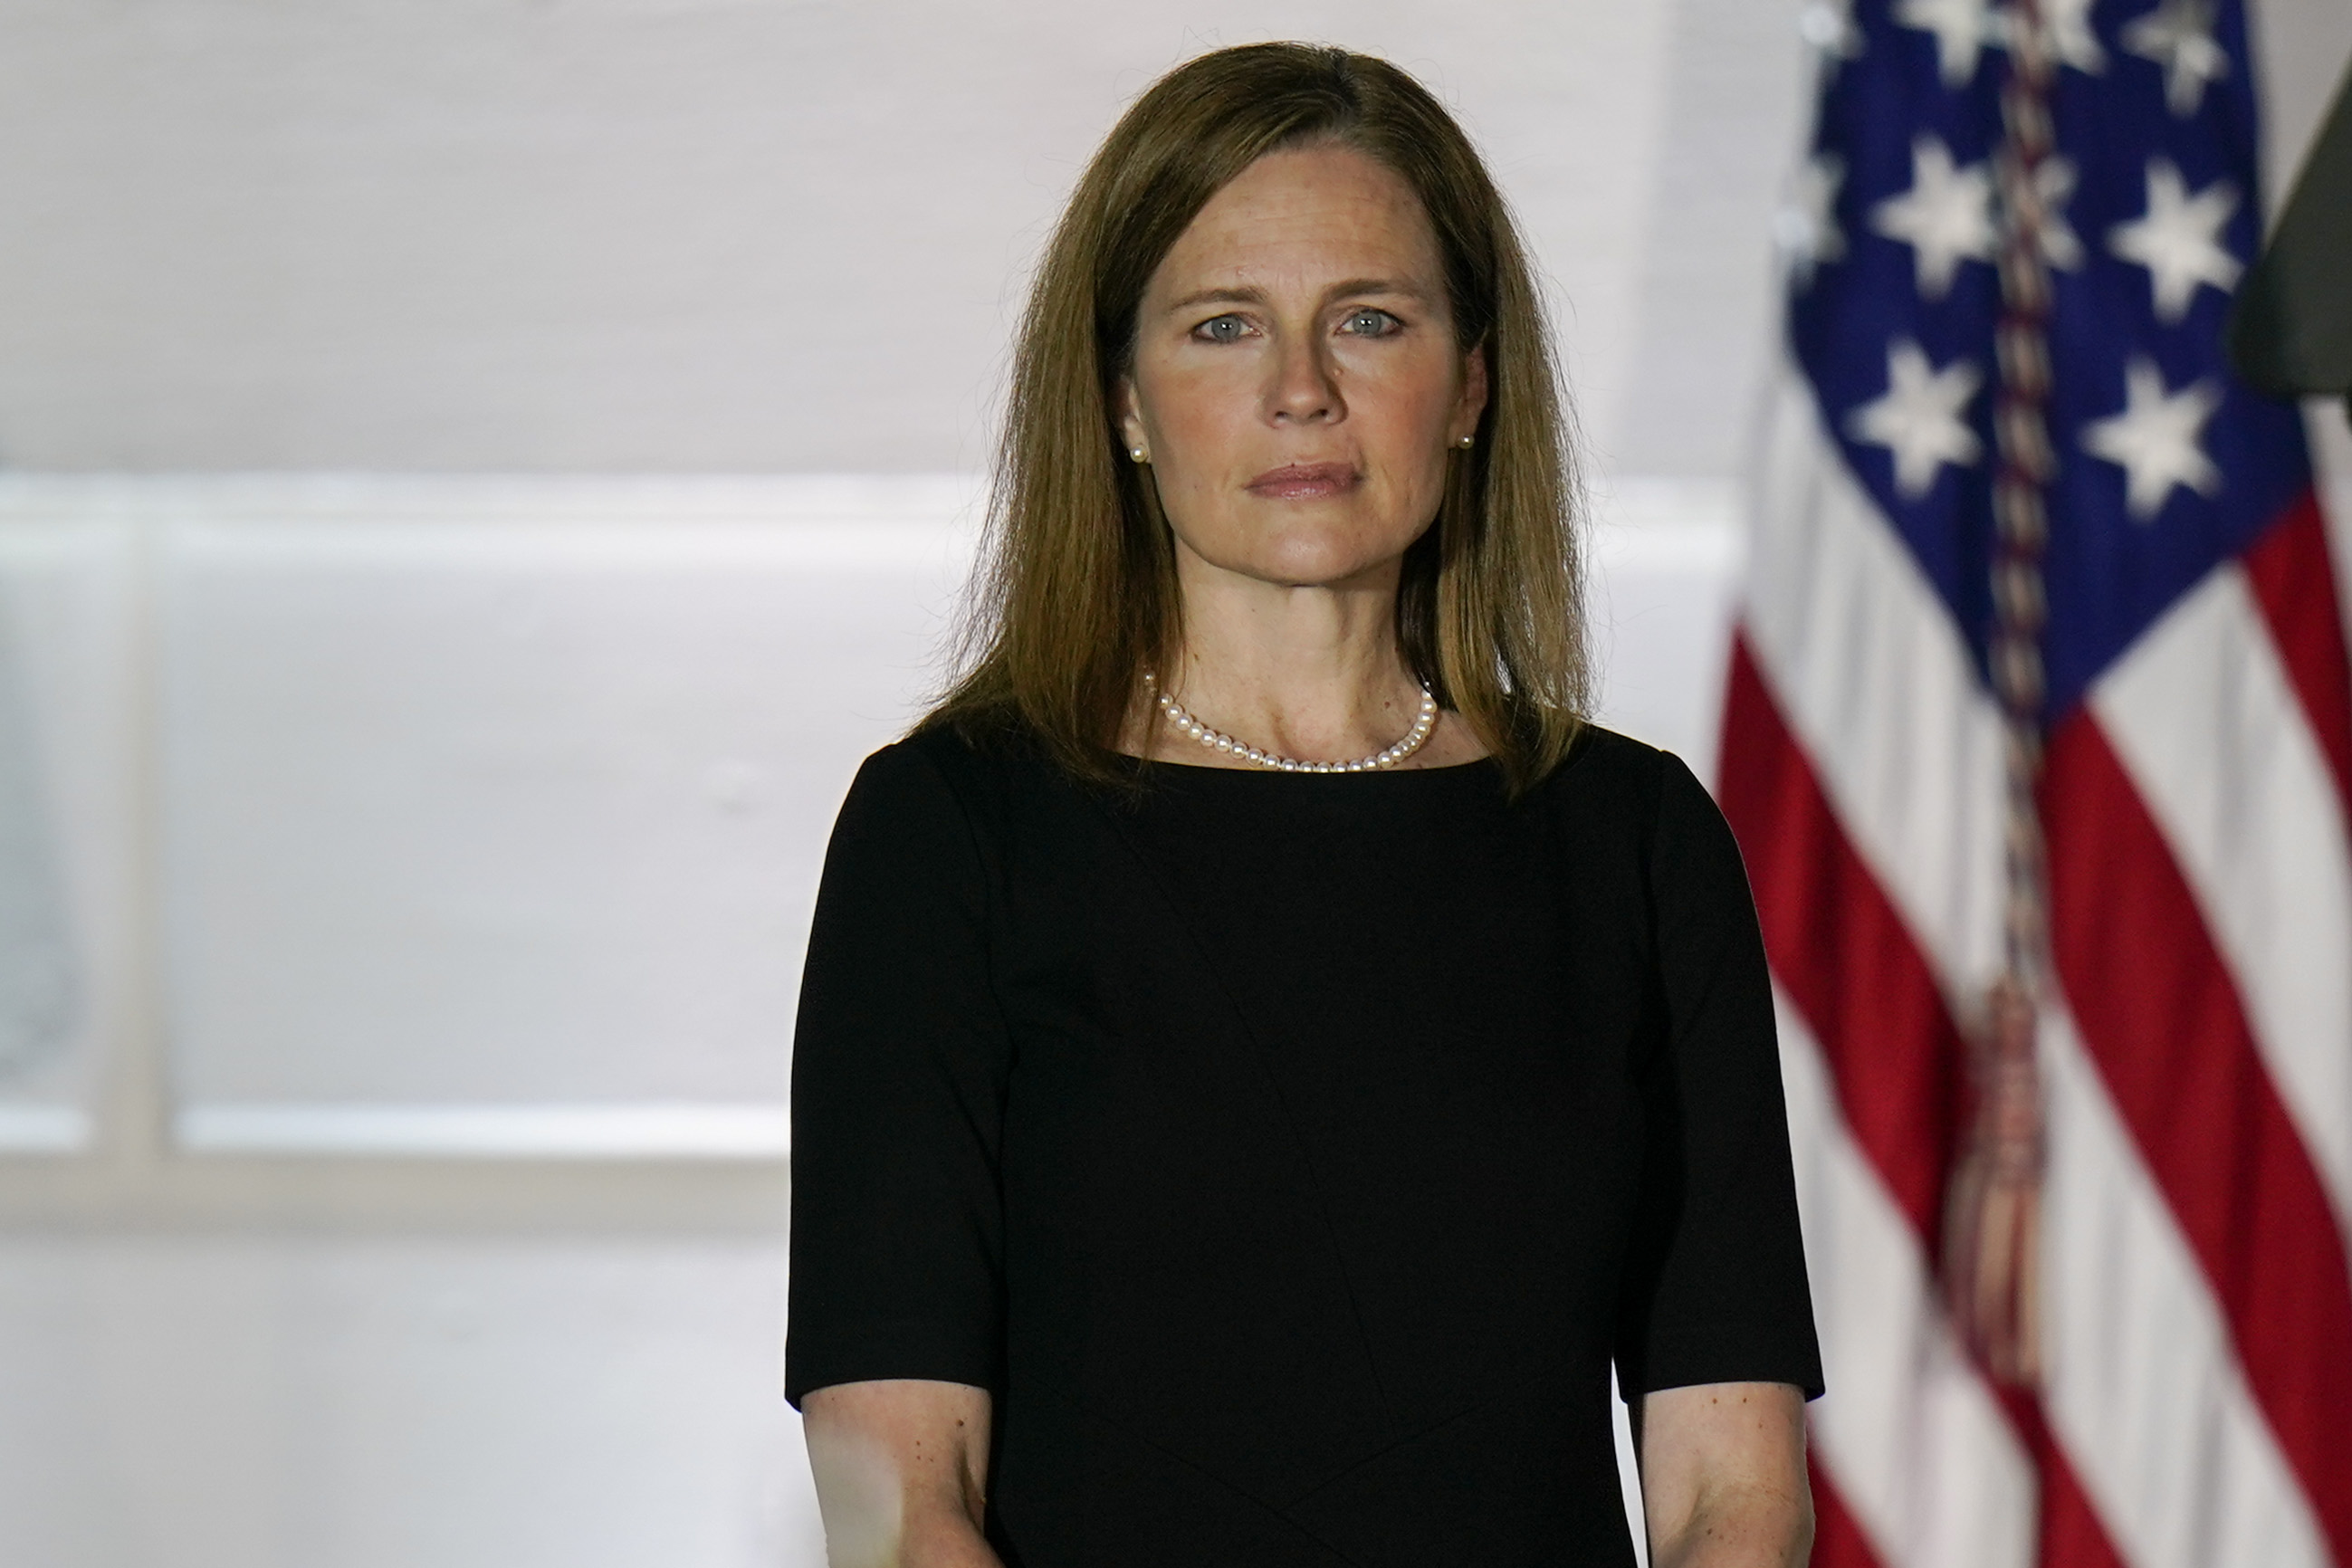 Amy Coney Barrett Casts Swing Vote to Block New York